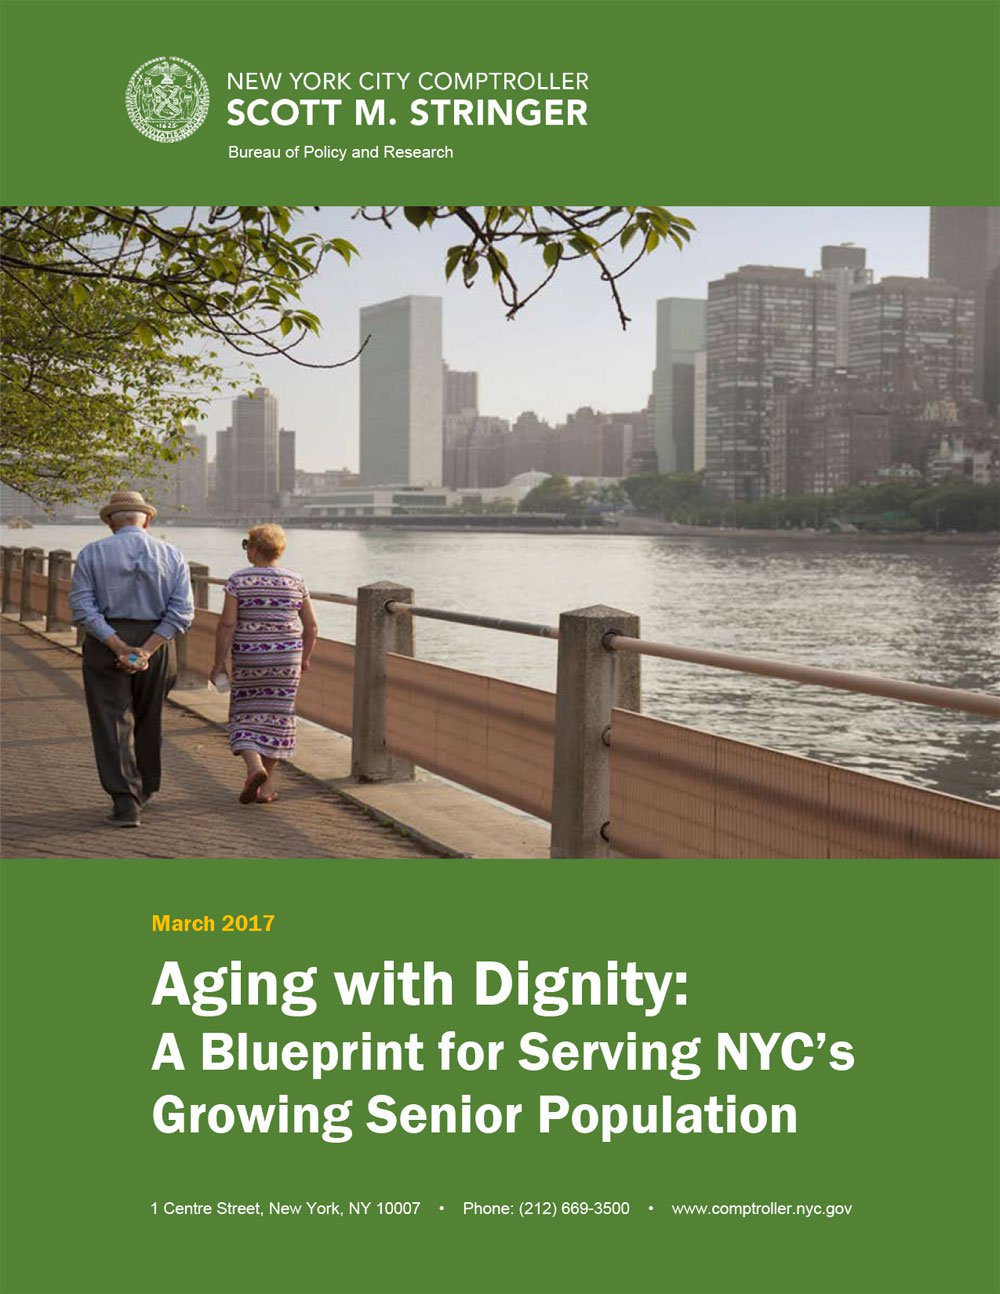 Aging with dignity a blueprint for serving nycs growing senior aging with dignity a blueprint for serving nycs growing senior population office of the new york city comptroller scott m stringer malvernweather Images